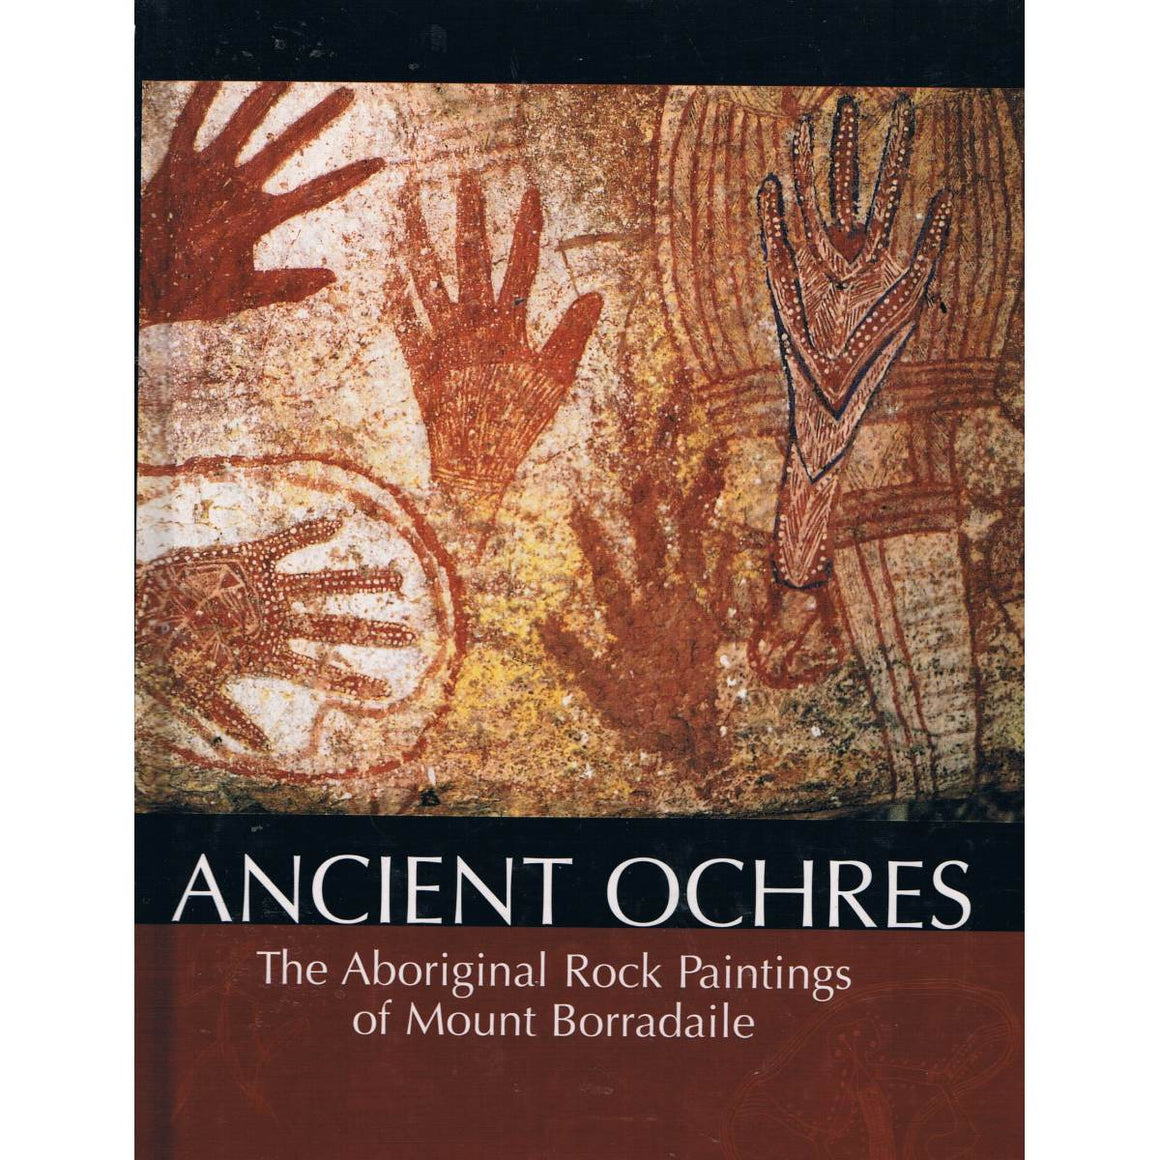 Book cover featuring a Aboriginal Rock Painting of hands including the words Ancient Ochres: Aboriginal Rock Paintings of Mount Borradaile